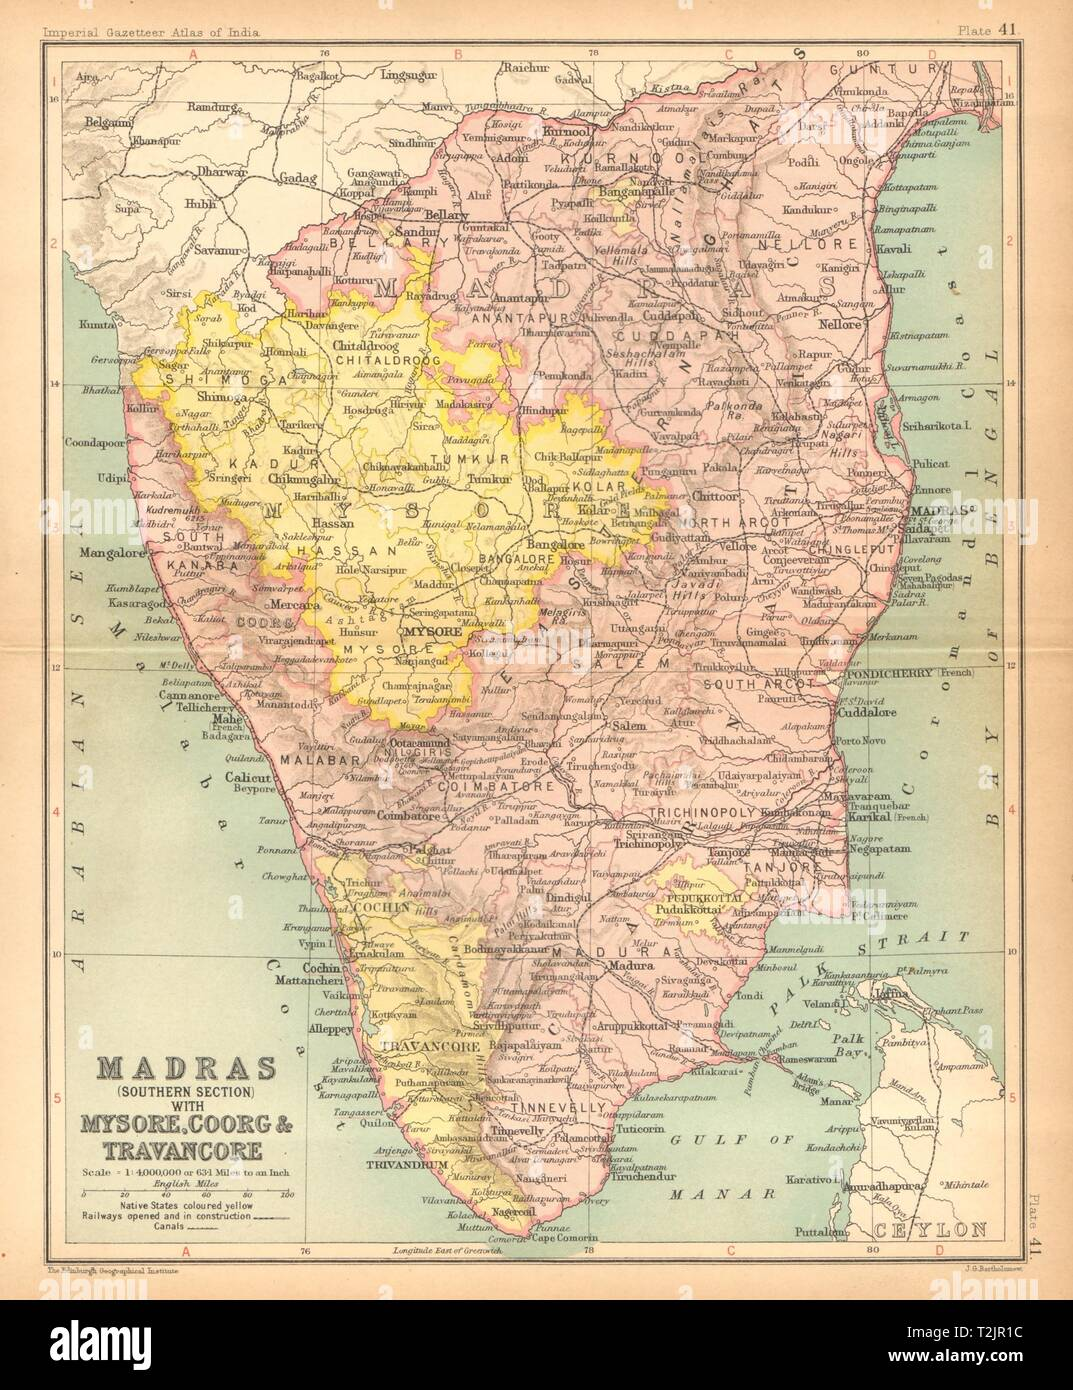 Madras… Mysore, Coorg & Travancore'. British India provinces ... on oslo norway on map, bora bora tahiti on map, medellin colombia on map, xiamen china on map, dublin ireland on map, bremen germany on map, madrid spain on map, port elizabeth south africa on map, copenhagen denmark on map, kuala lumpur malaysia on map, guangzhou china on map, bucharest romania on map, stockholm sweden on map, buenos aires argentina on map, phuket thailand on map, nice france on map, jakarta indonesia on map, shannon ireland on map, munich germany on map, cape town south africa on map,